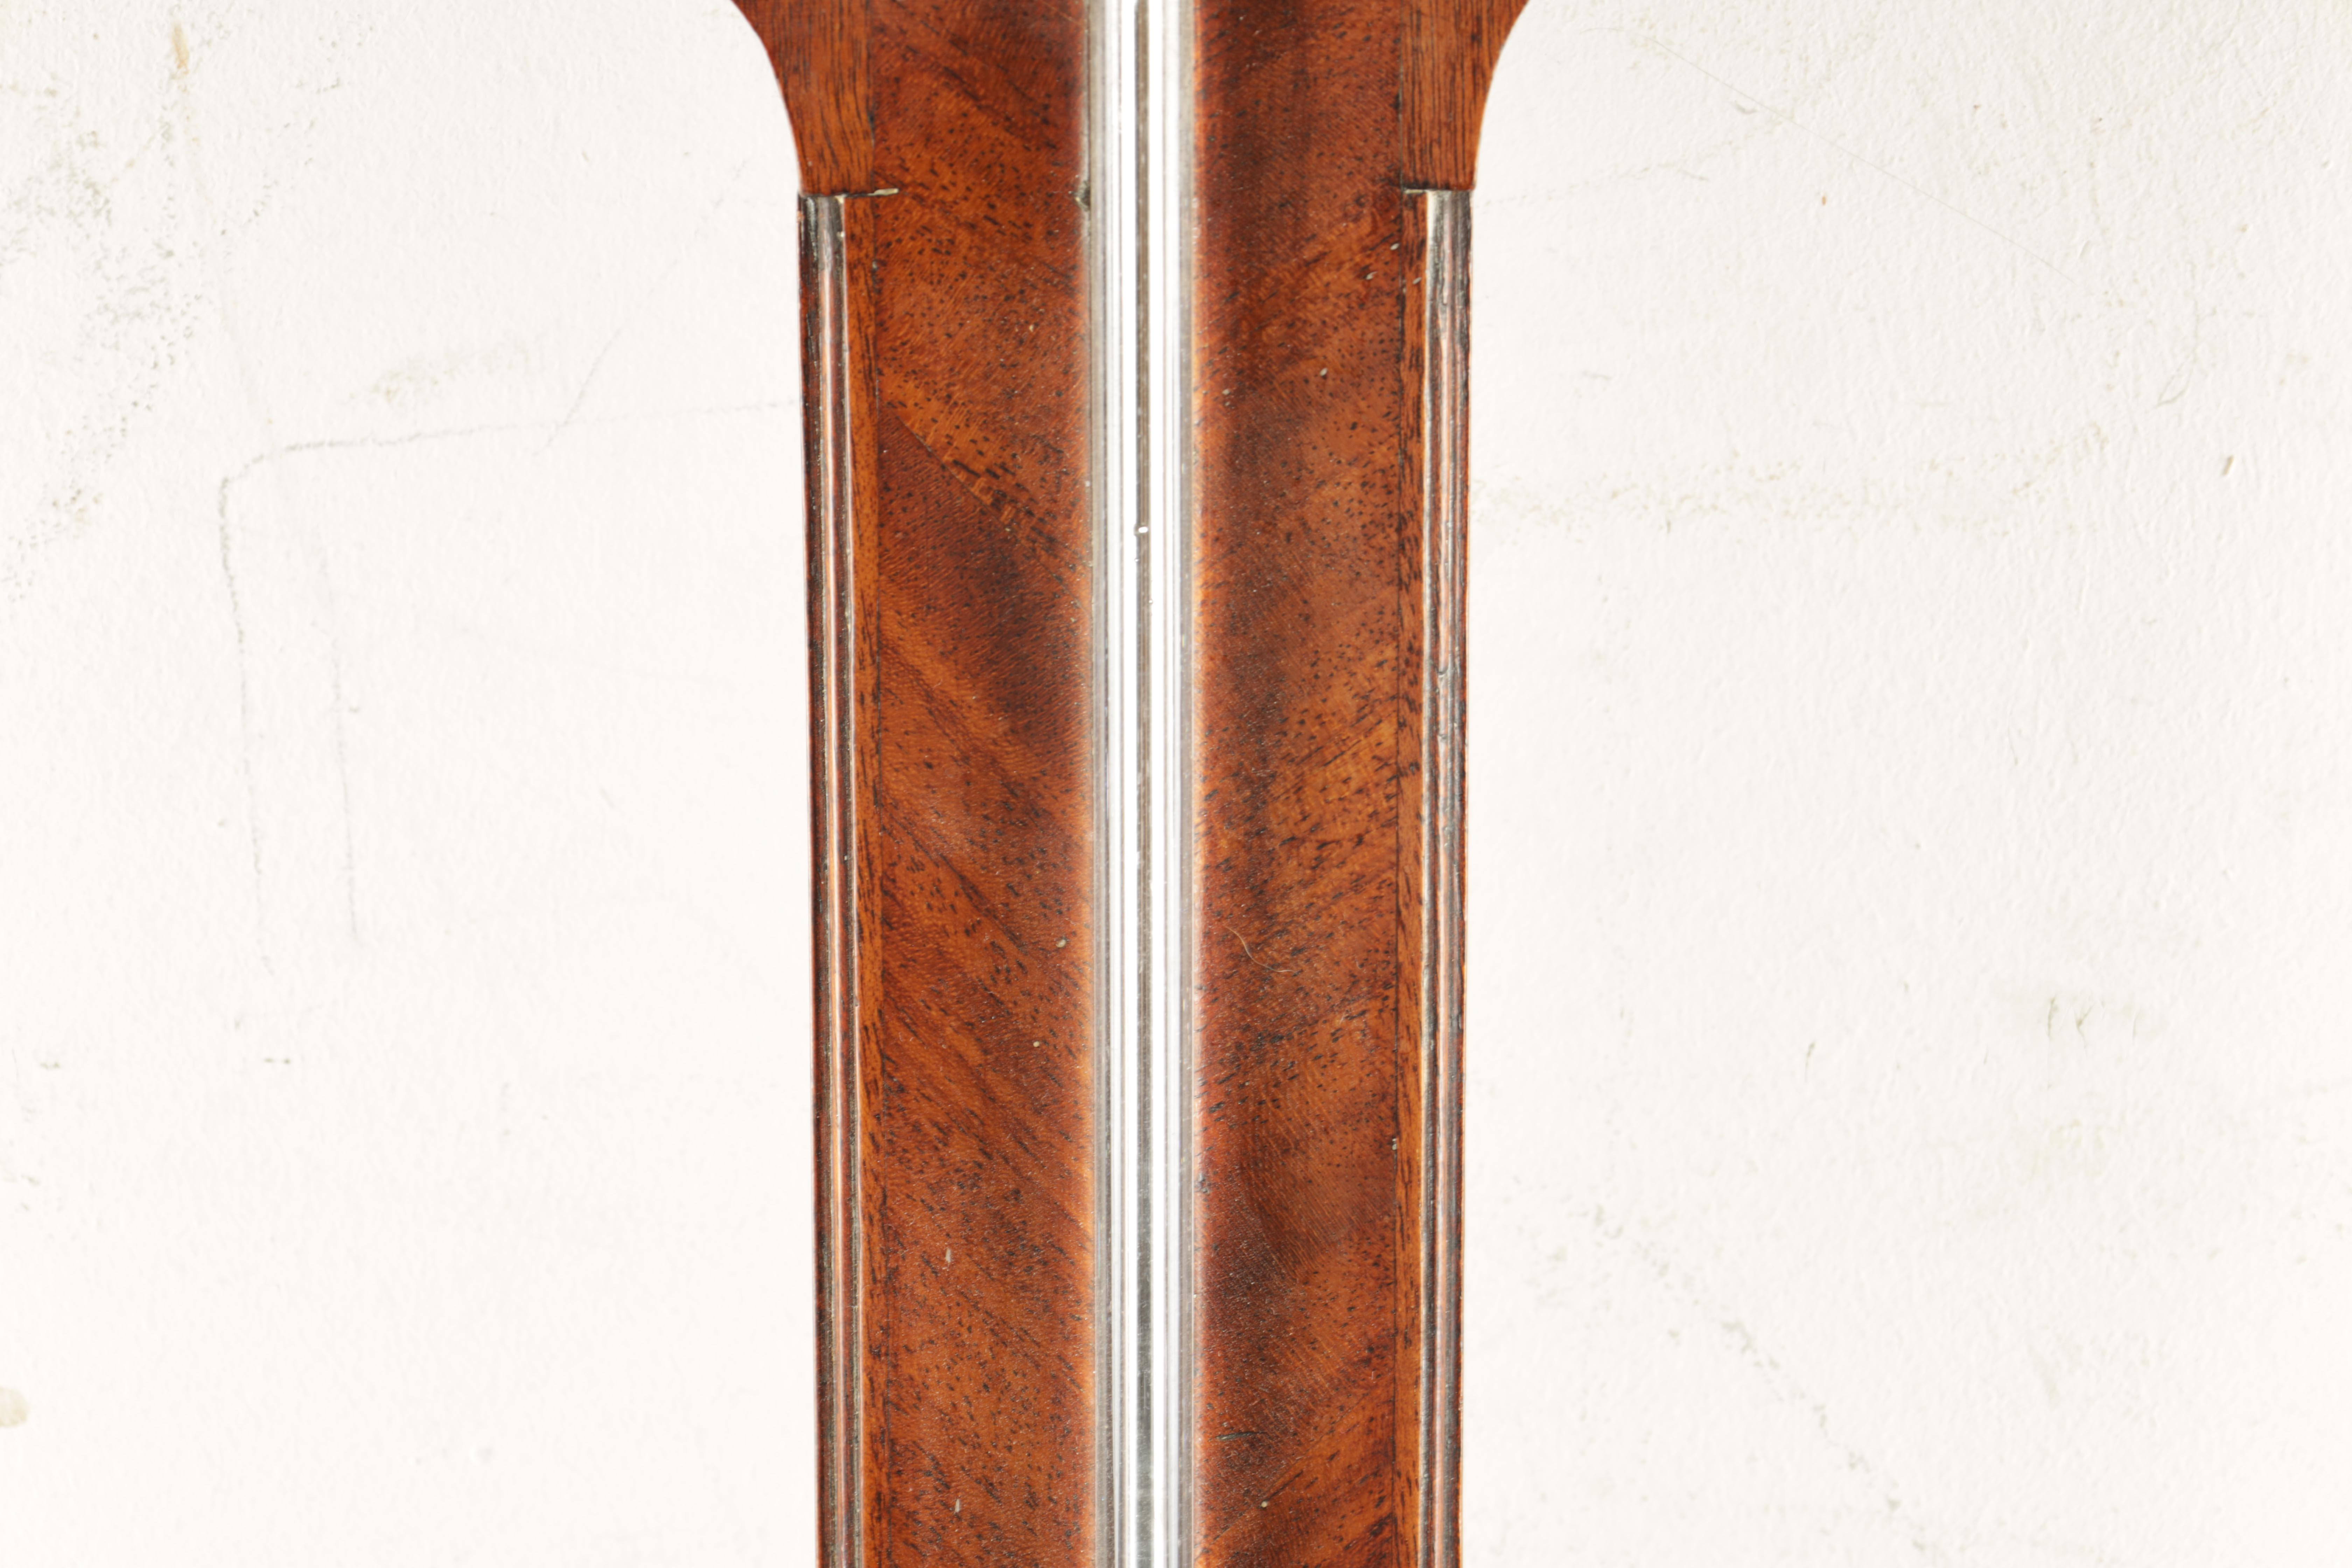 F. BOVERIL, 9 EYRE STREET, HILL, LONDON A GEORGE III MAHOGANY STICK BAROMETER the case with arched - Image 2 of 6